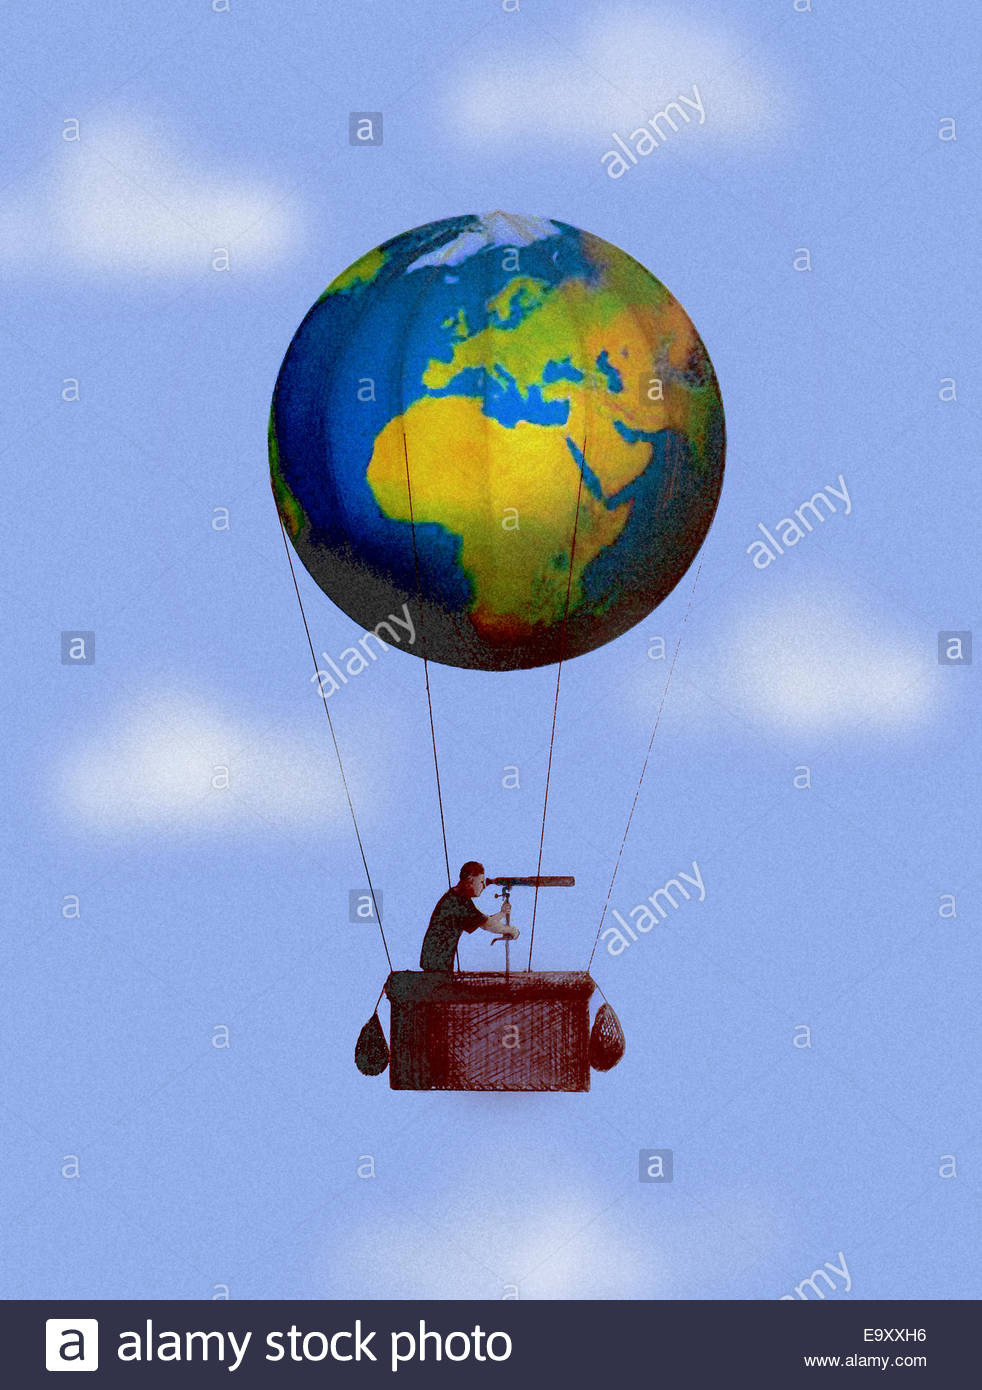 Man looking through telescope in globe hot air balloon - Stock Image